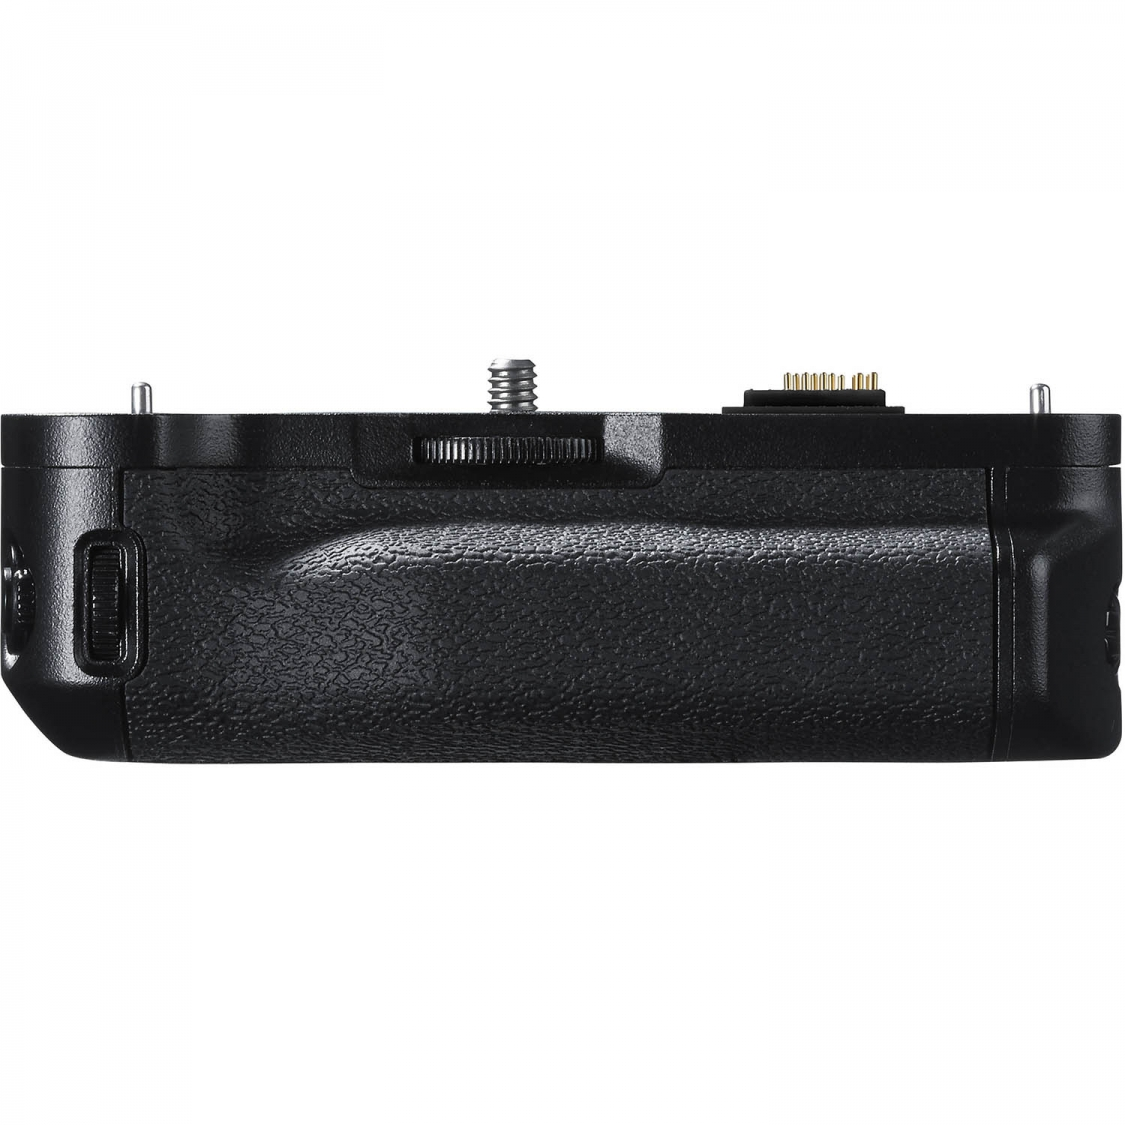 Fuji VG-XT1 Vertical Battery Grip